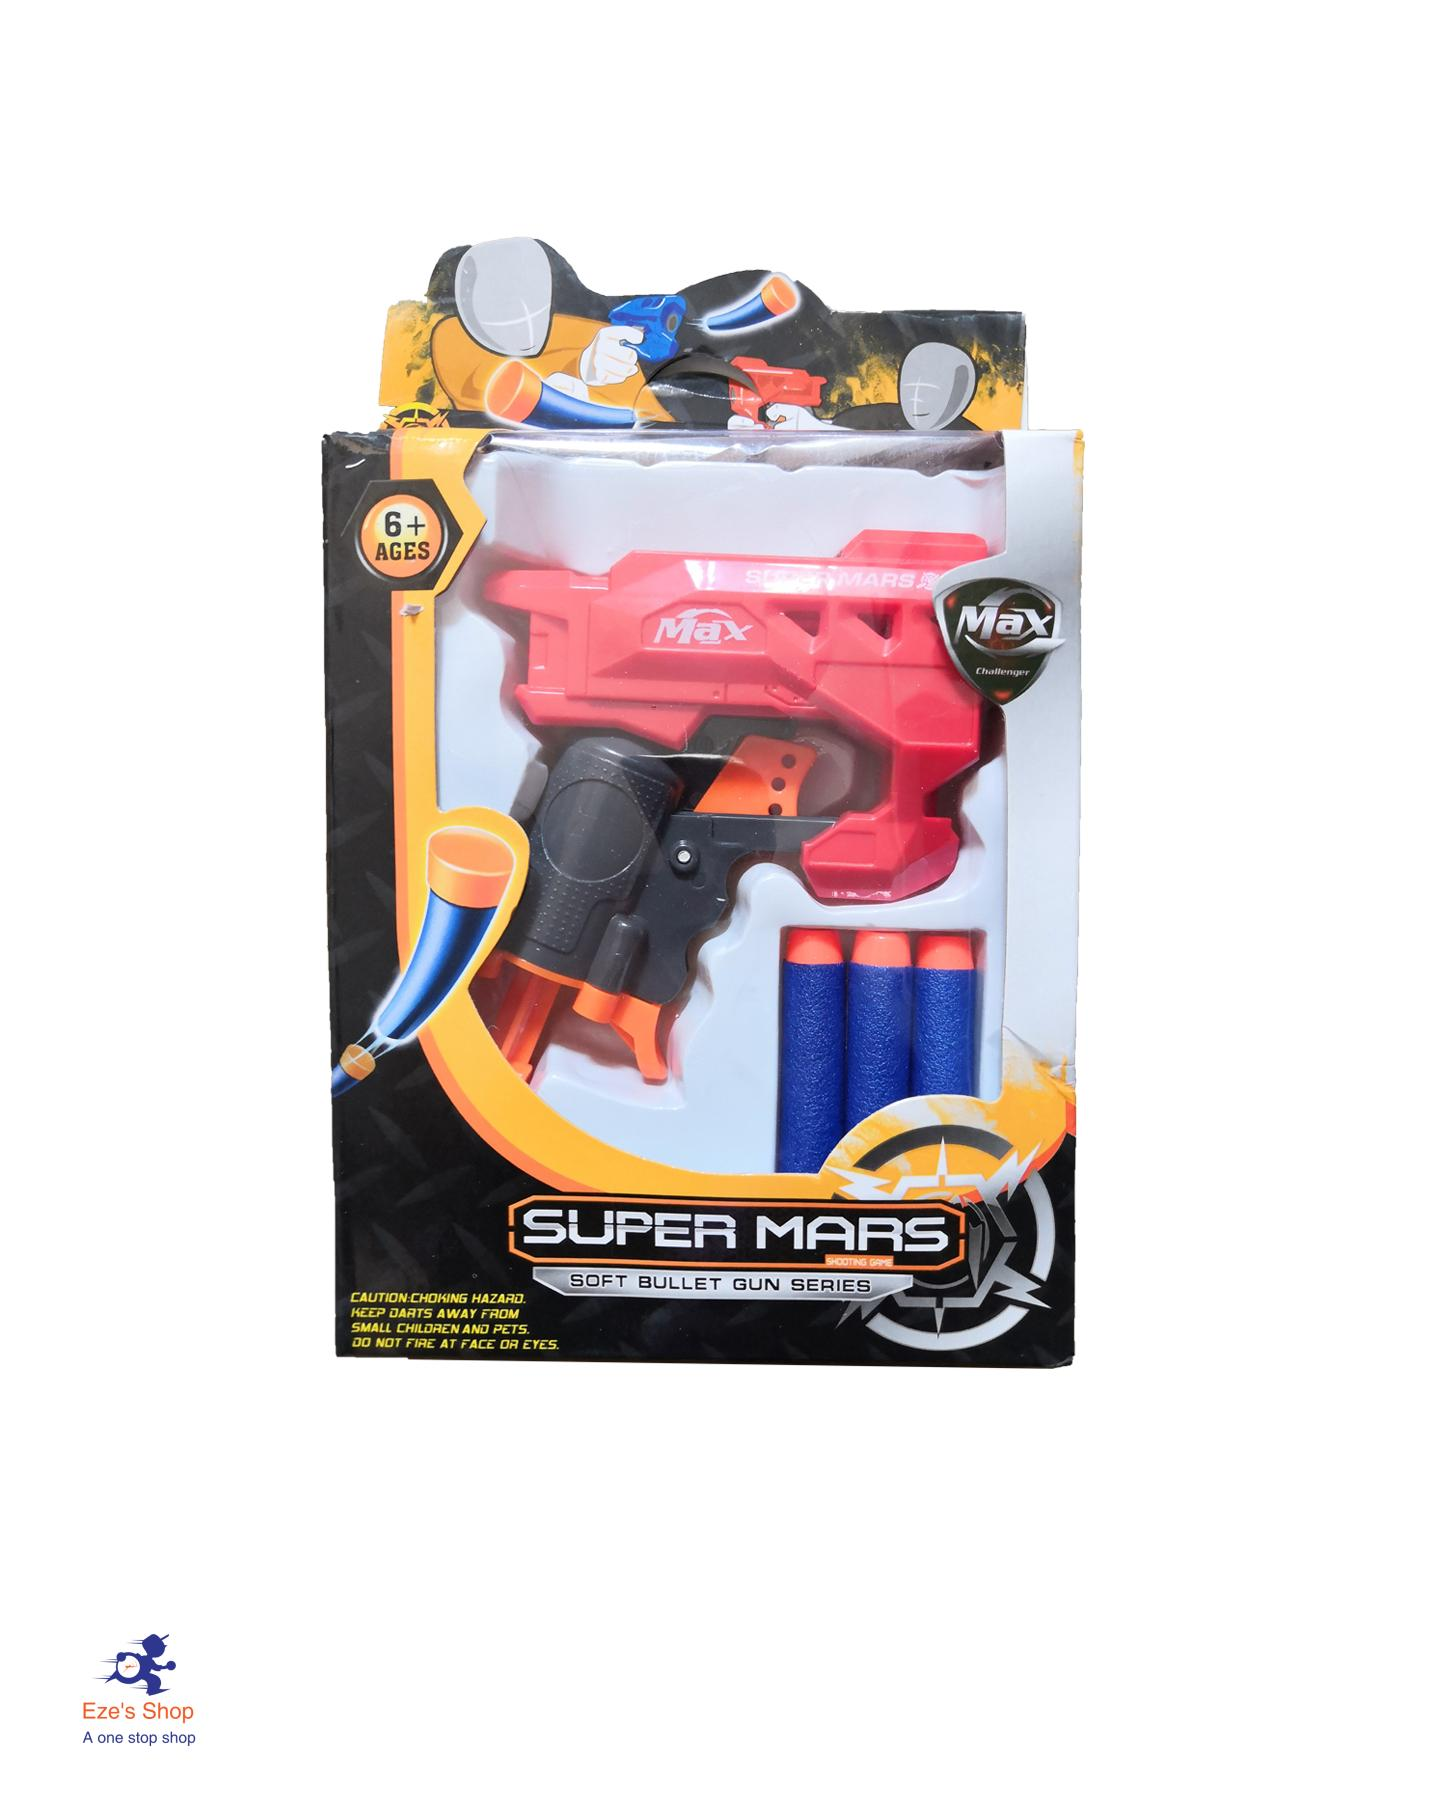 Nerf Gun By Ezes Shop.